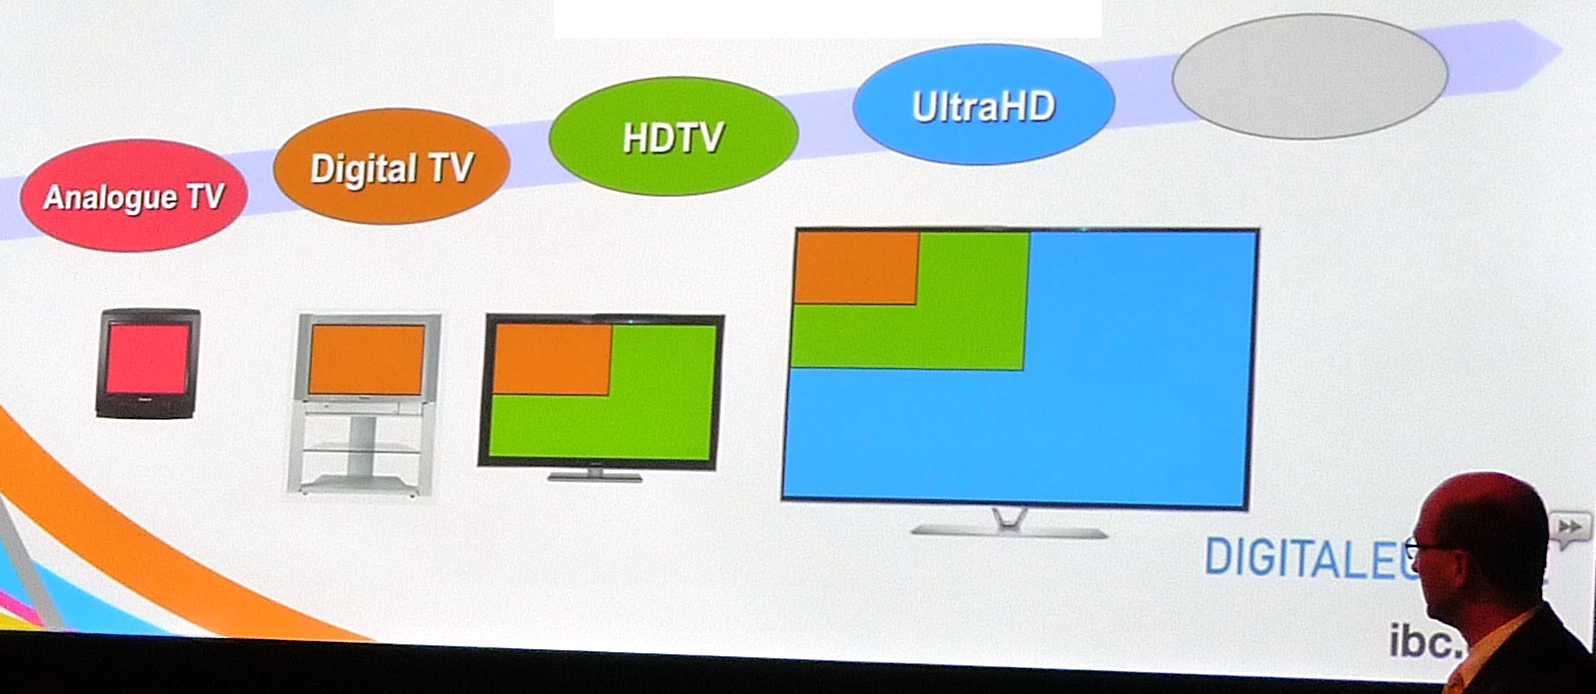 History of TV Formats in Martin Faehnrich presentation on Ultra-HD -thefilmbook